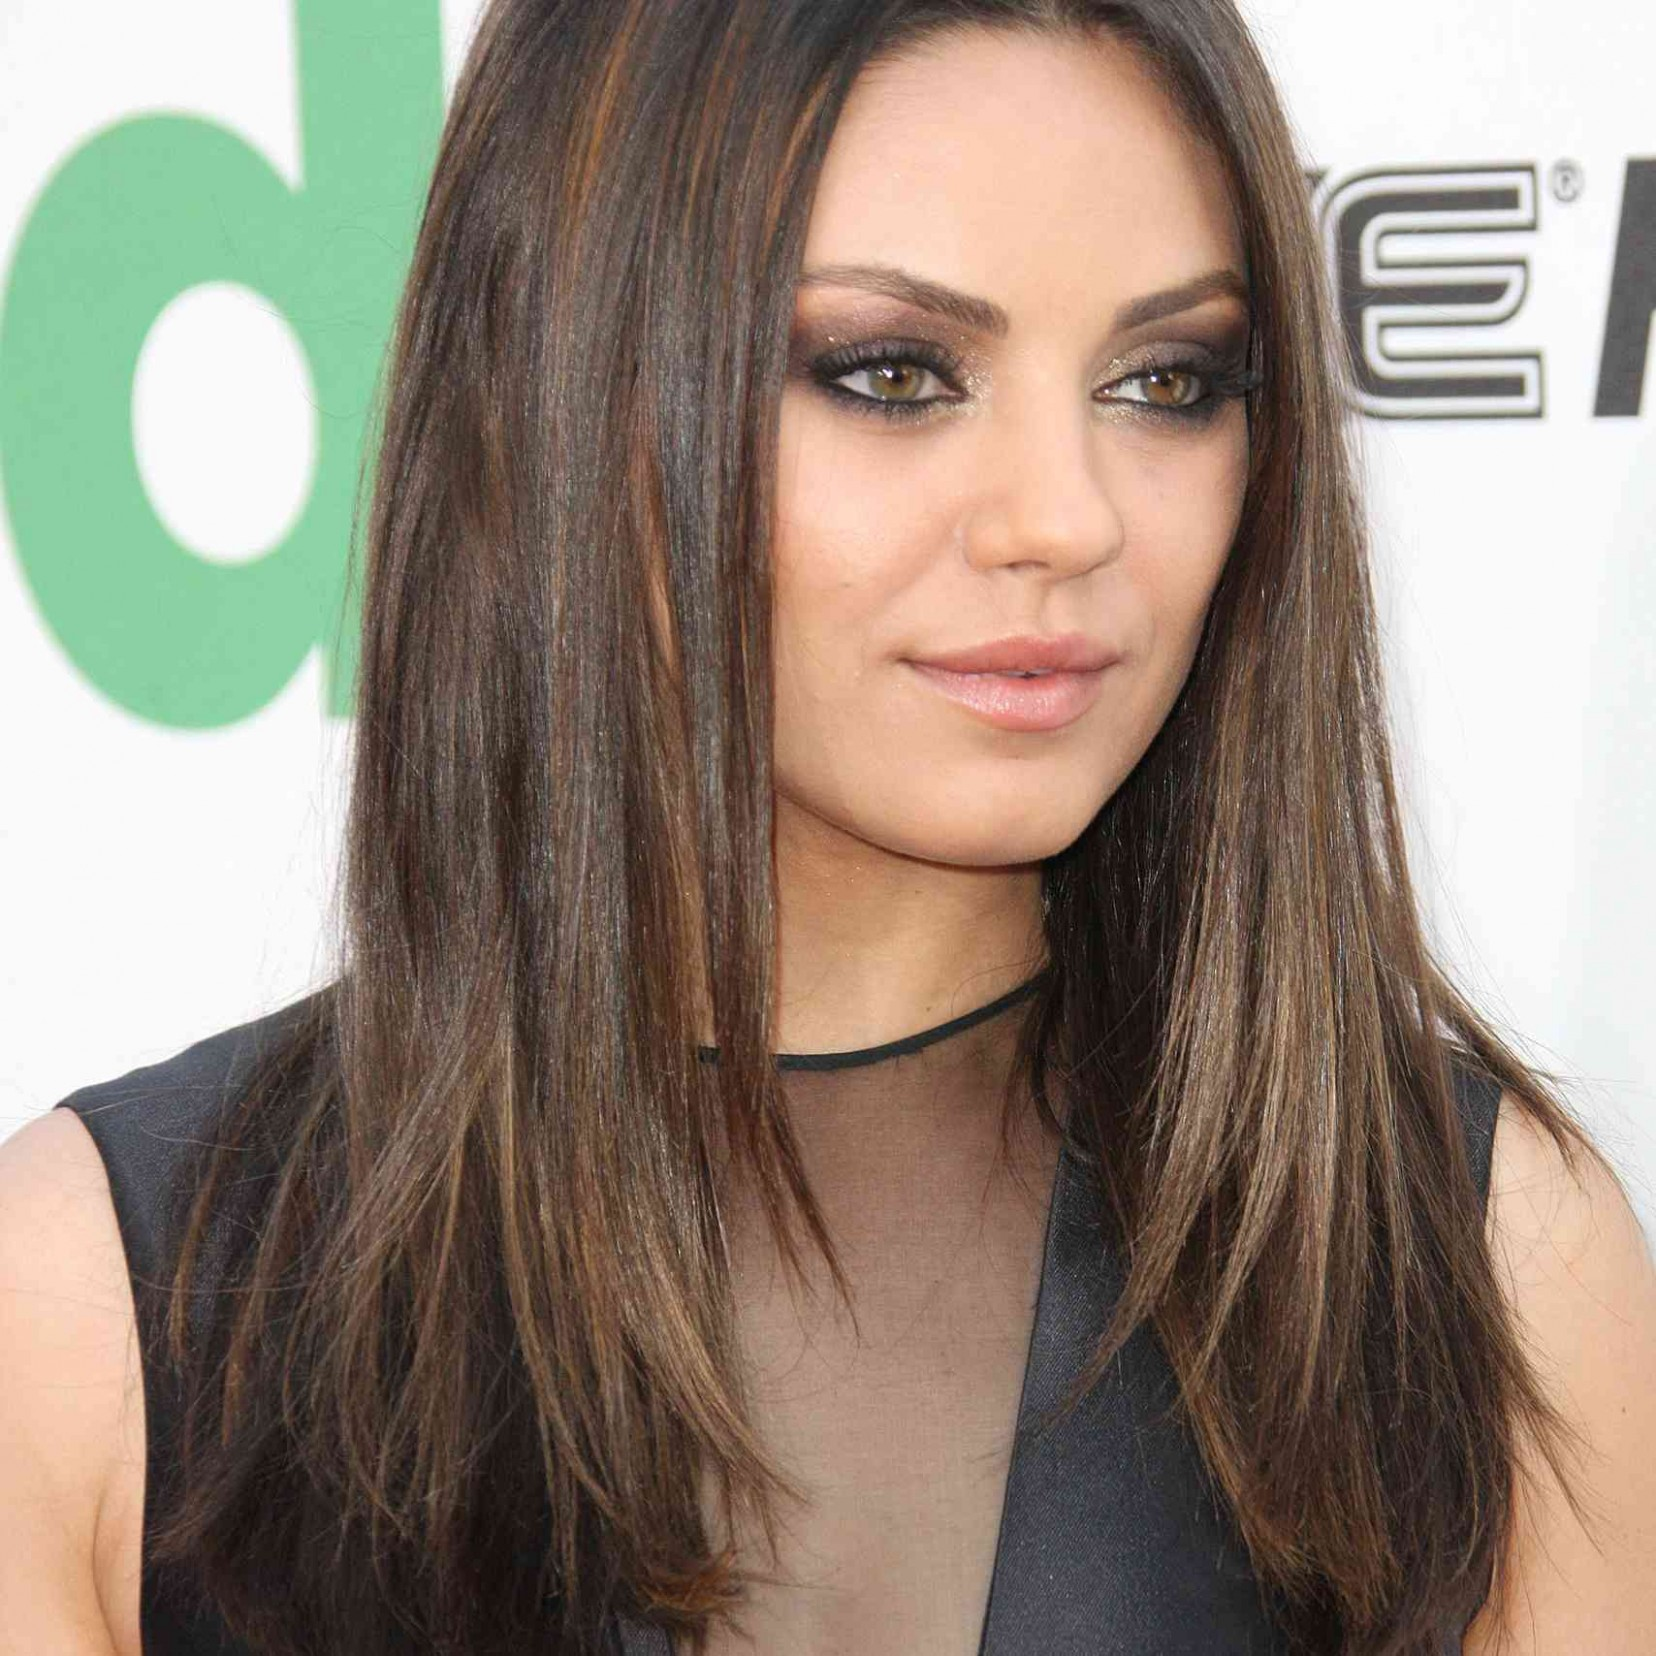 10 Of The Best Hairstyles For Round Faces Best Haircut For Round Face Female